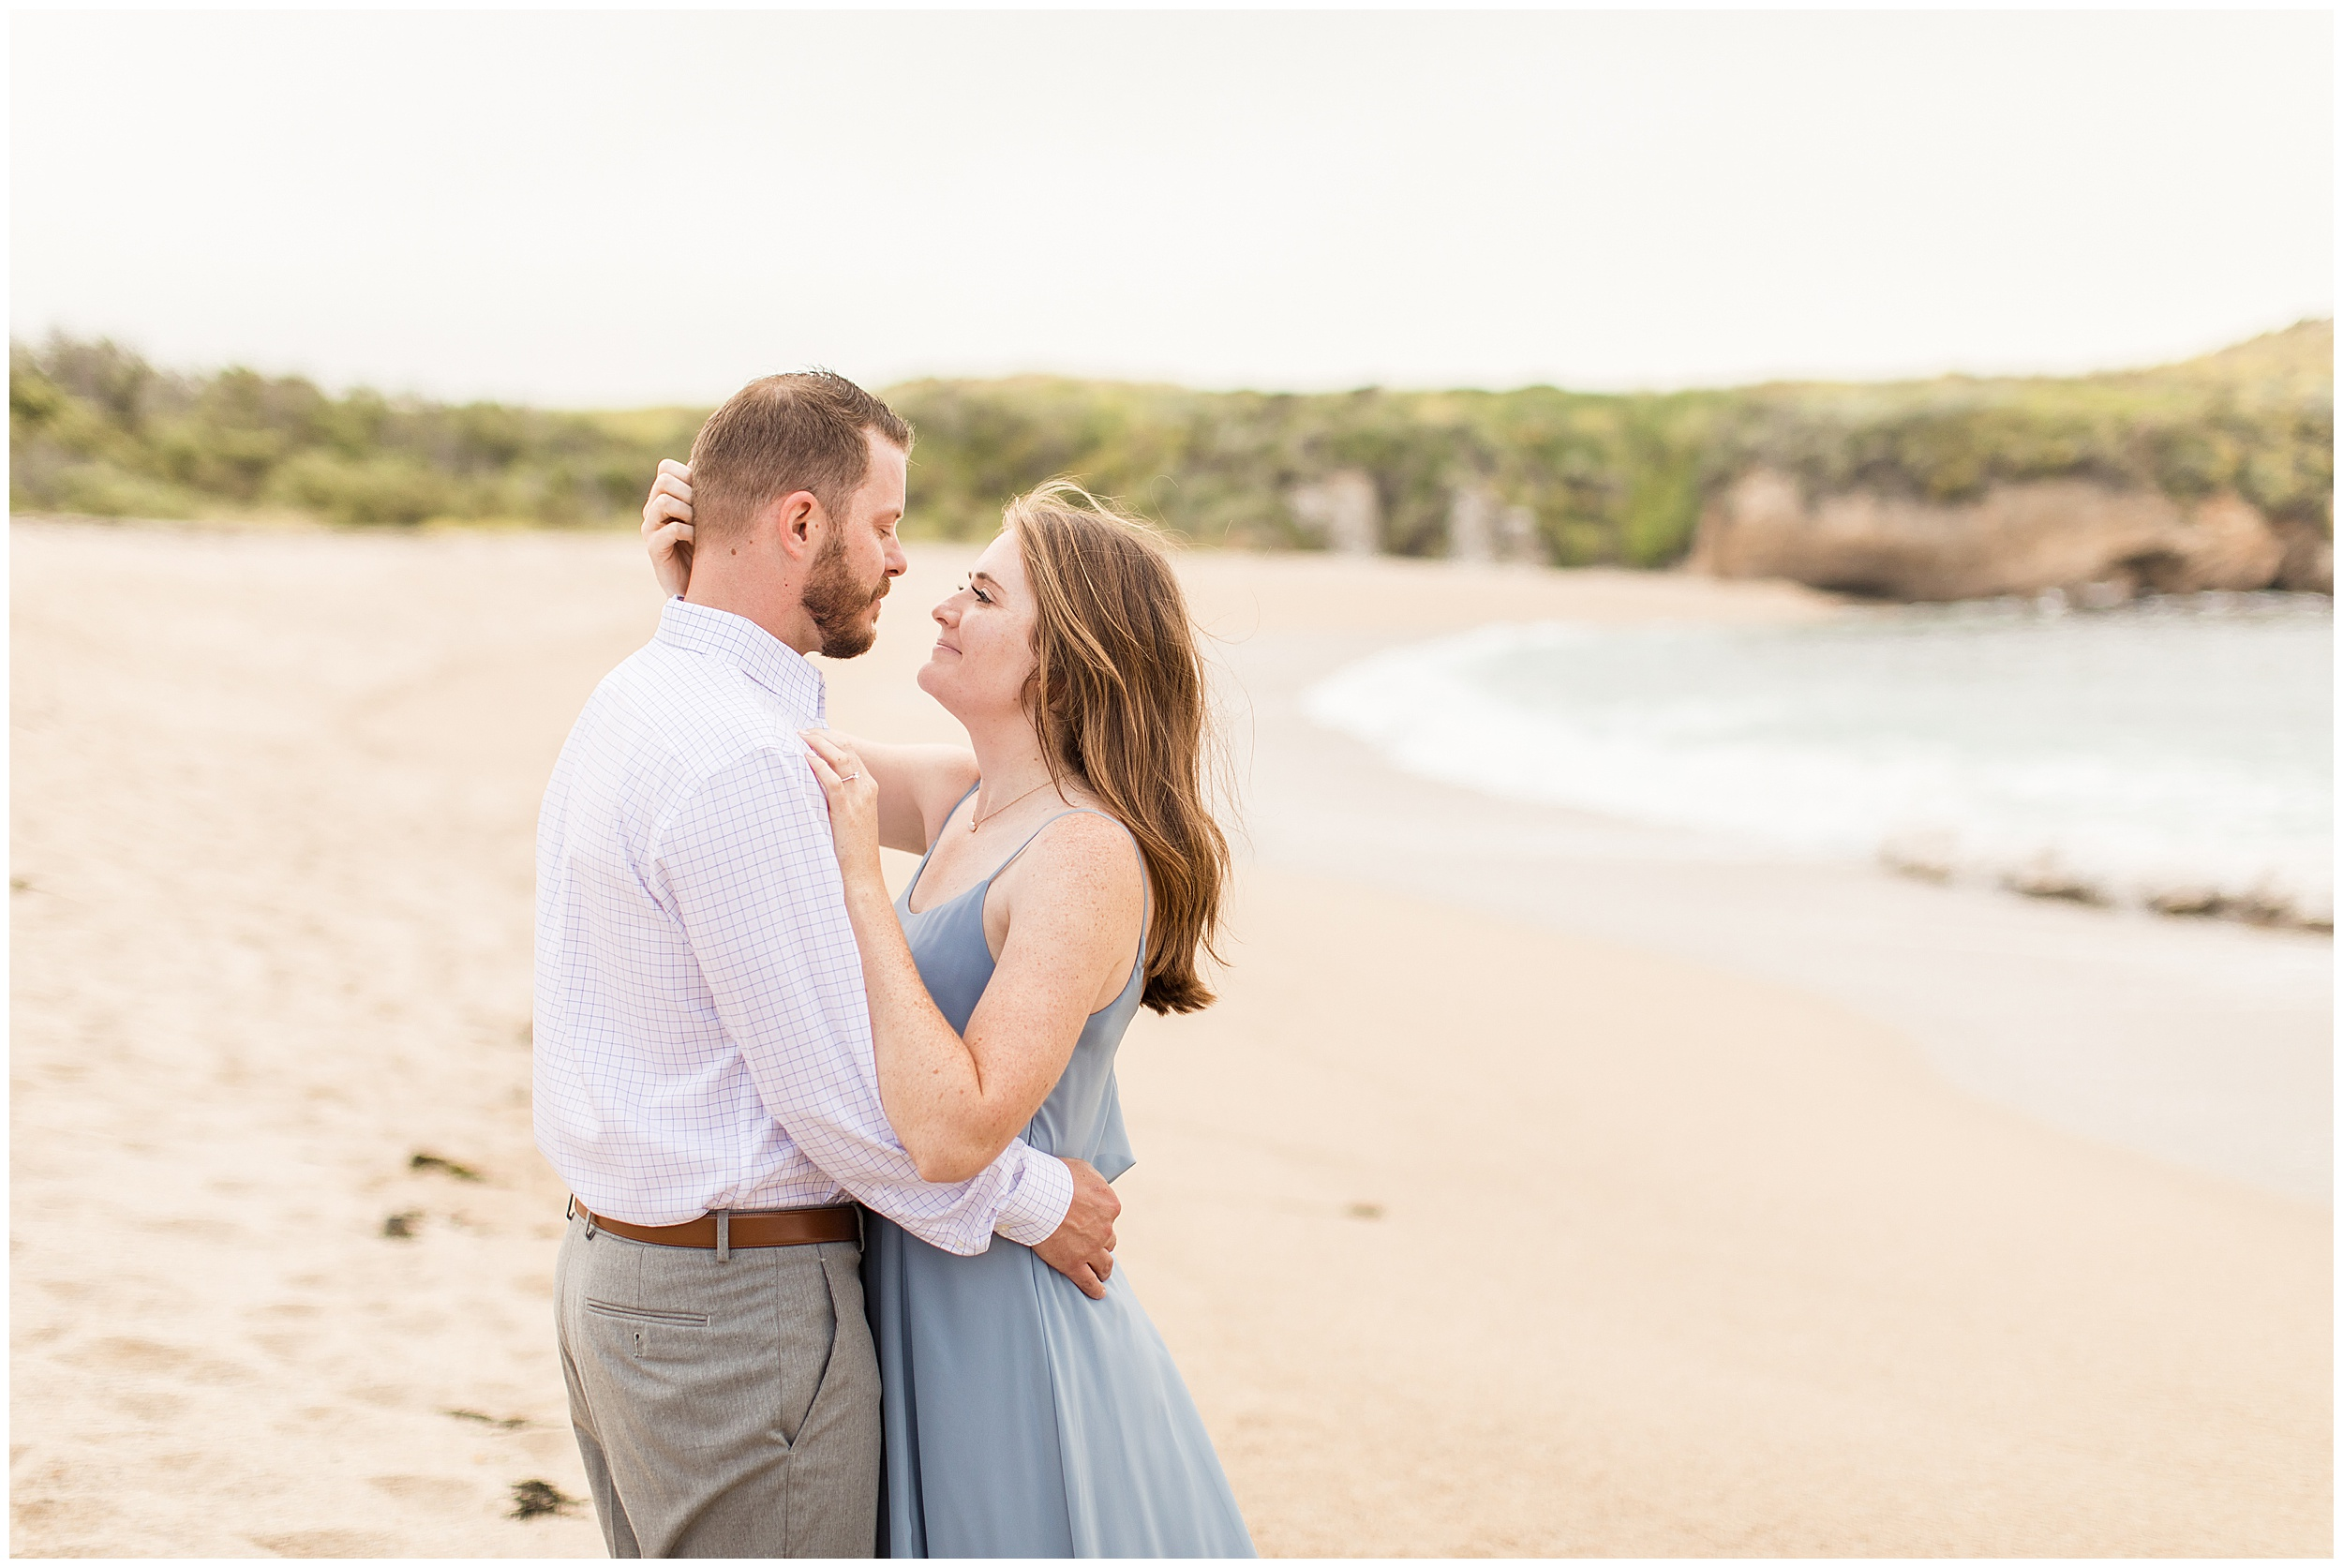 2019 carmel by the sea surprise proposal engagement session wedding photographer angela sue photography_0022.jpg